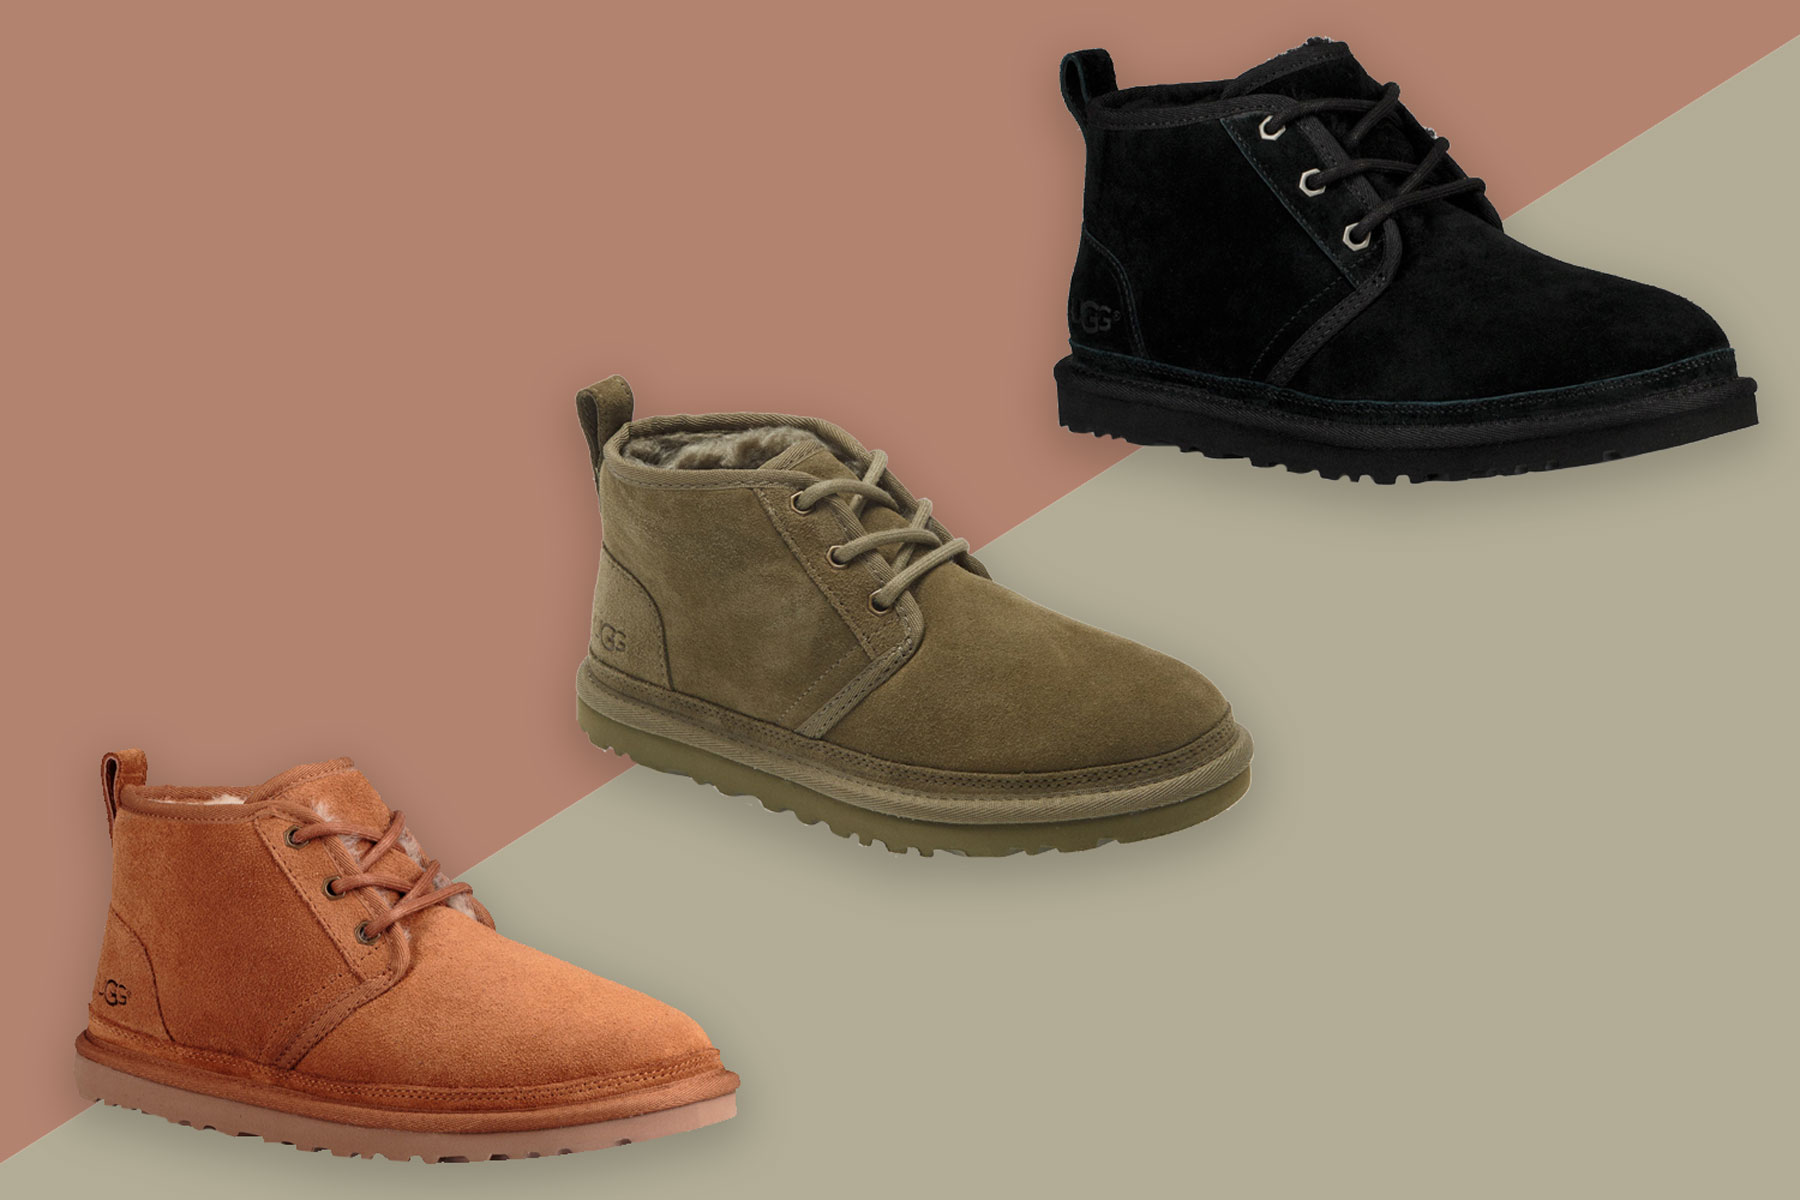 Brown, olive green, and black suede chukka boots